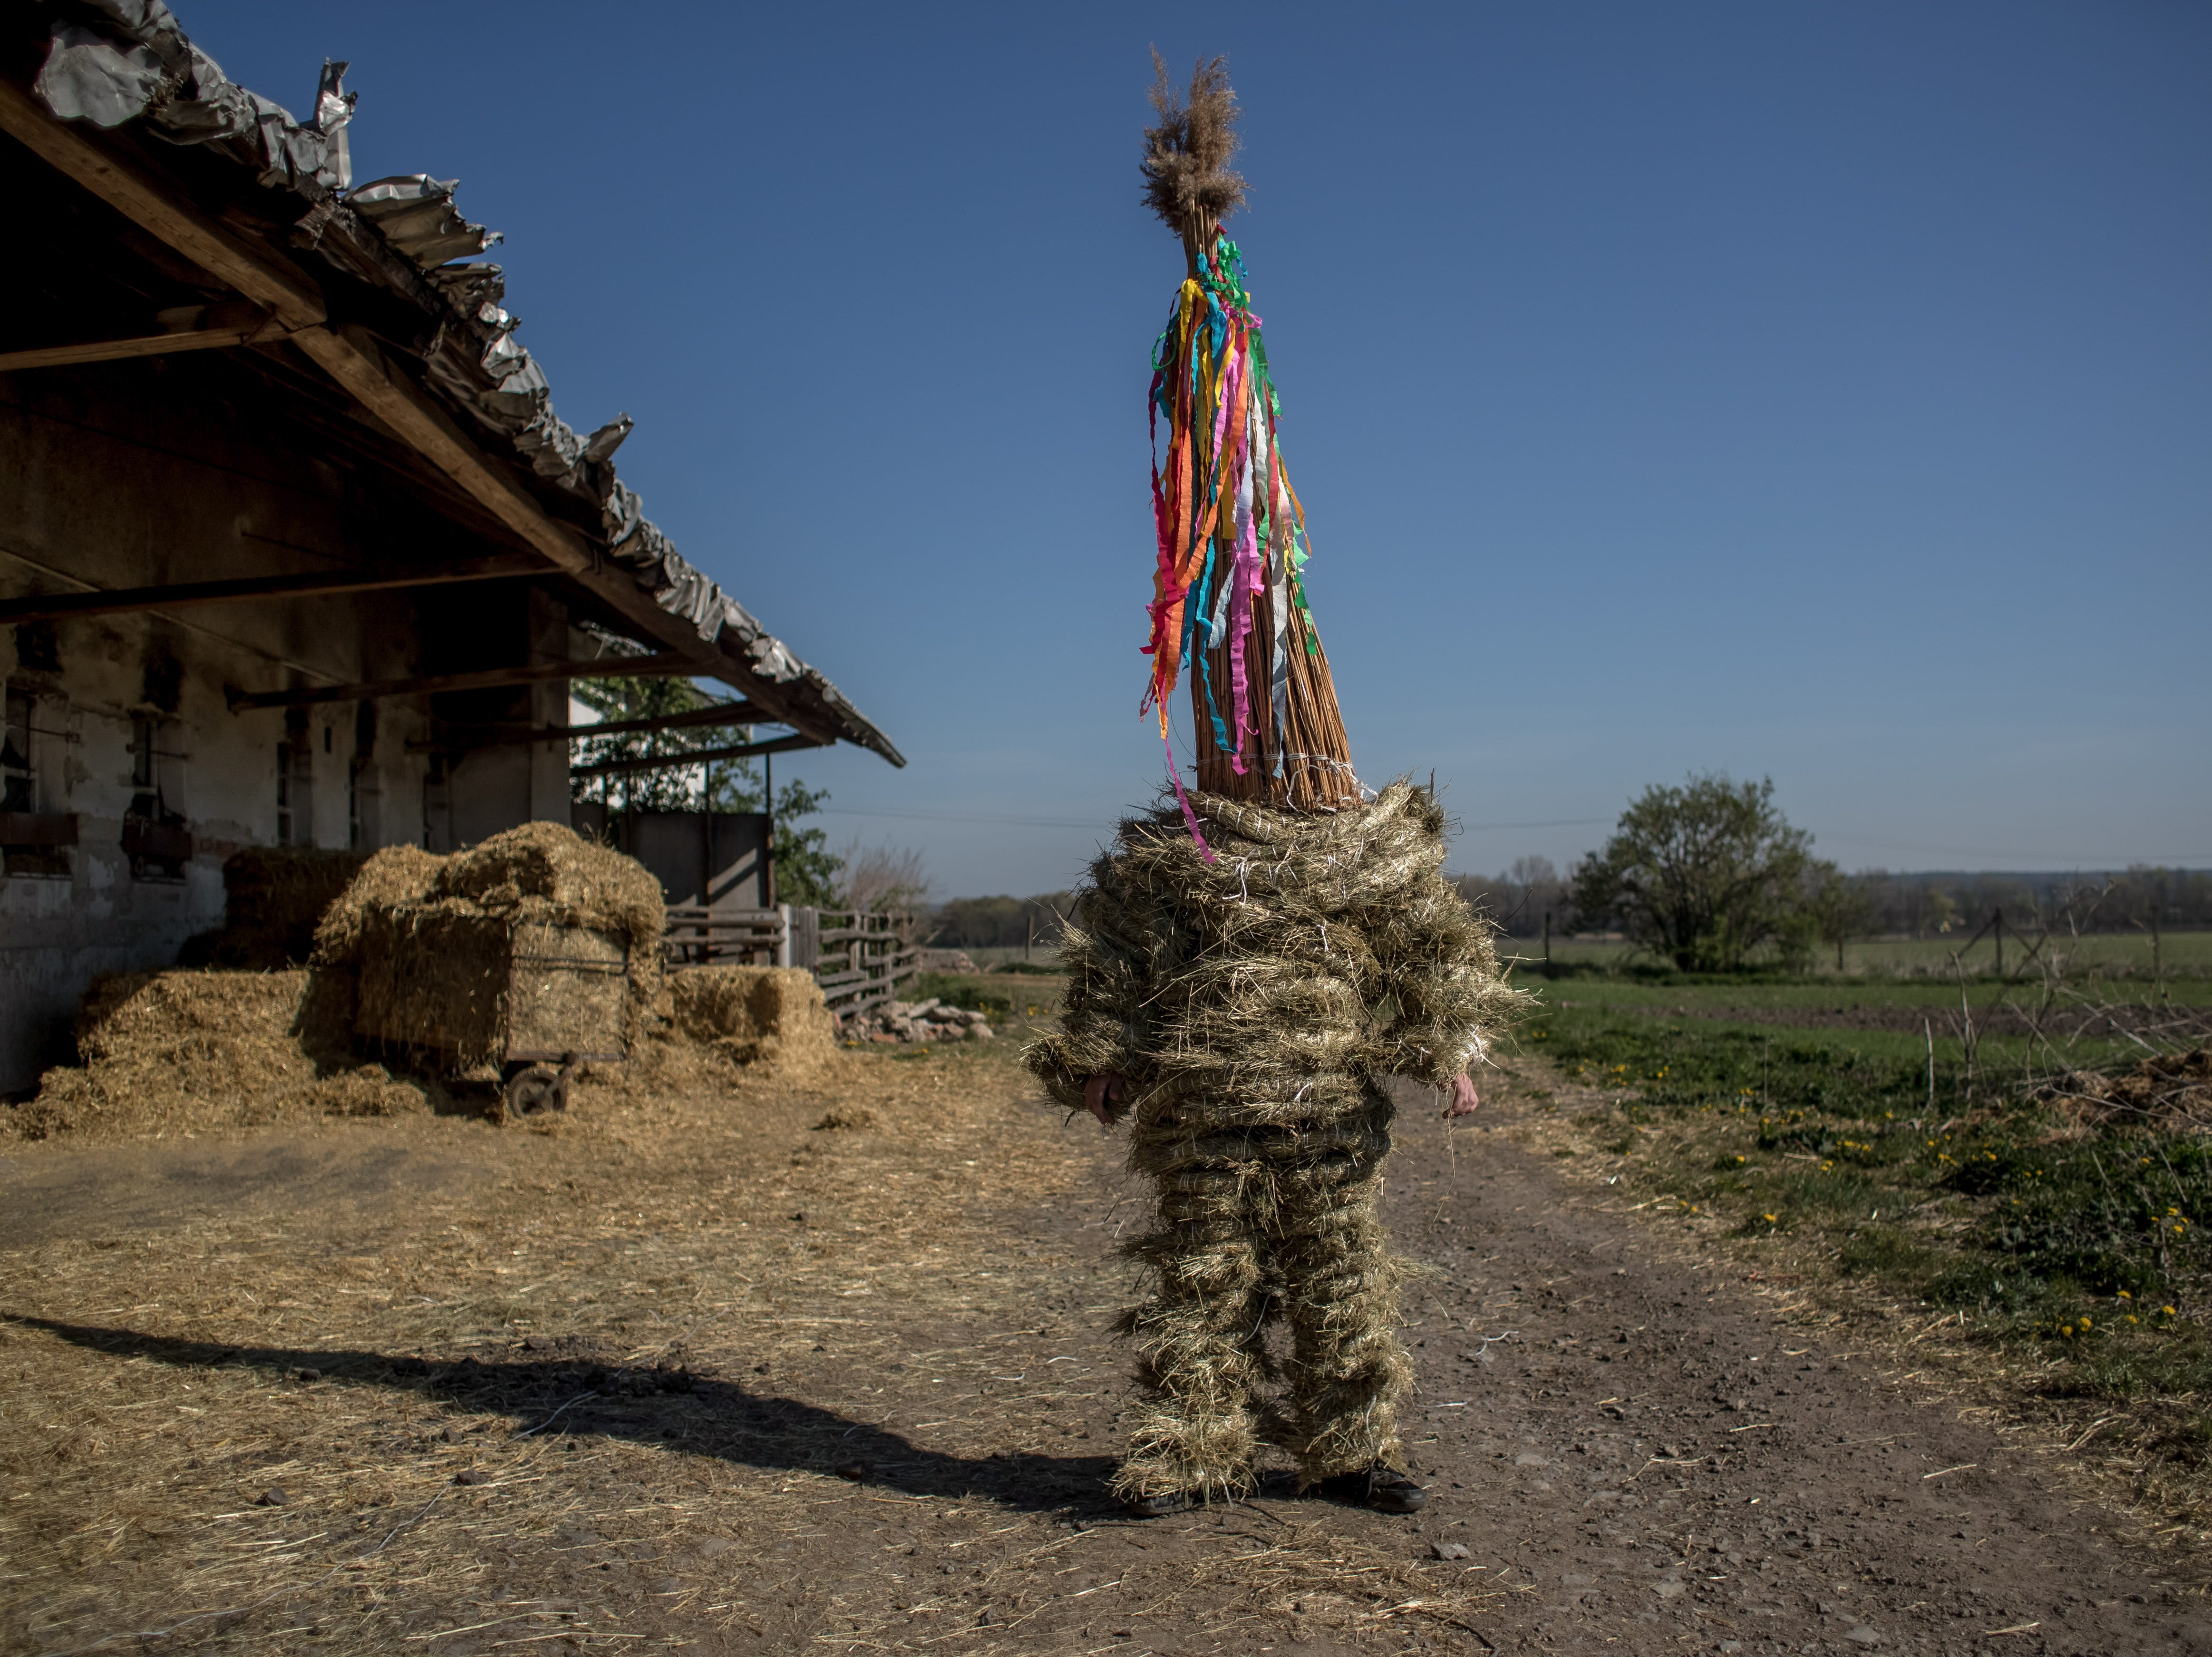 A boy dressed in a hay suit prepares for an Easter procession called 'Marching Judas' in the village of Stradoun, Czech Republic on April 20, 2019. The 'Marching Judas' is an old Czech Easter tradition of dressing up the oldest teenage boy in a village in a hay suit and a high cap from reed symbolizing Judas, who betrayed Jesus Christ. The boy in a hay suit, along with other teenagers walk through the village house by house pushing wooden rattles and recite carol about Judas betray. Marching Judas tradition occurs in few villages in Pardubice region and was registered on the UNESCO List of the Intangible Cultural Heritage of Humanity in 2012.